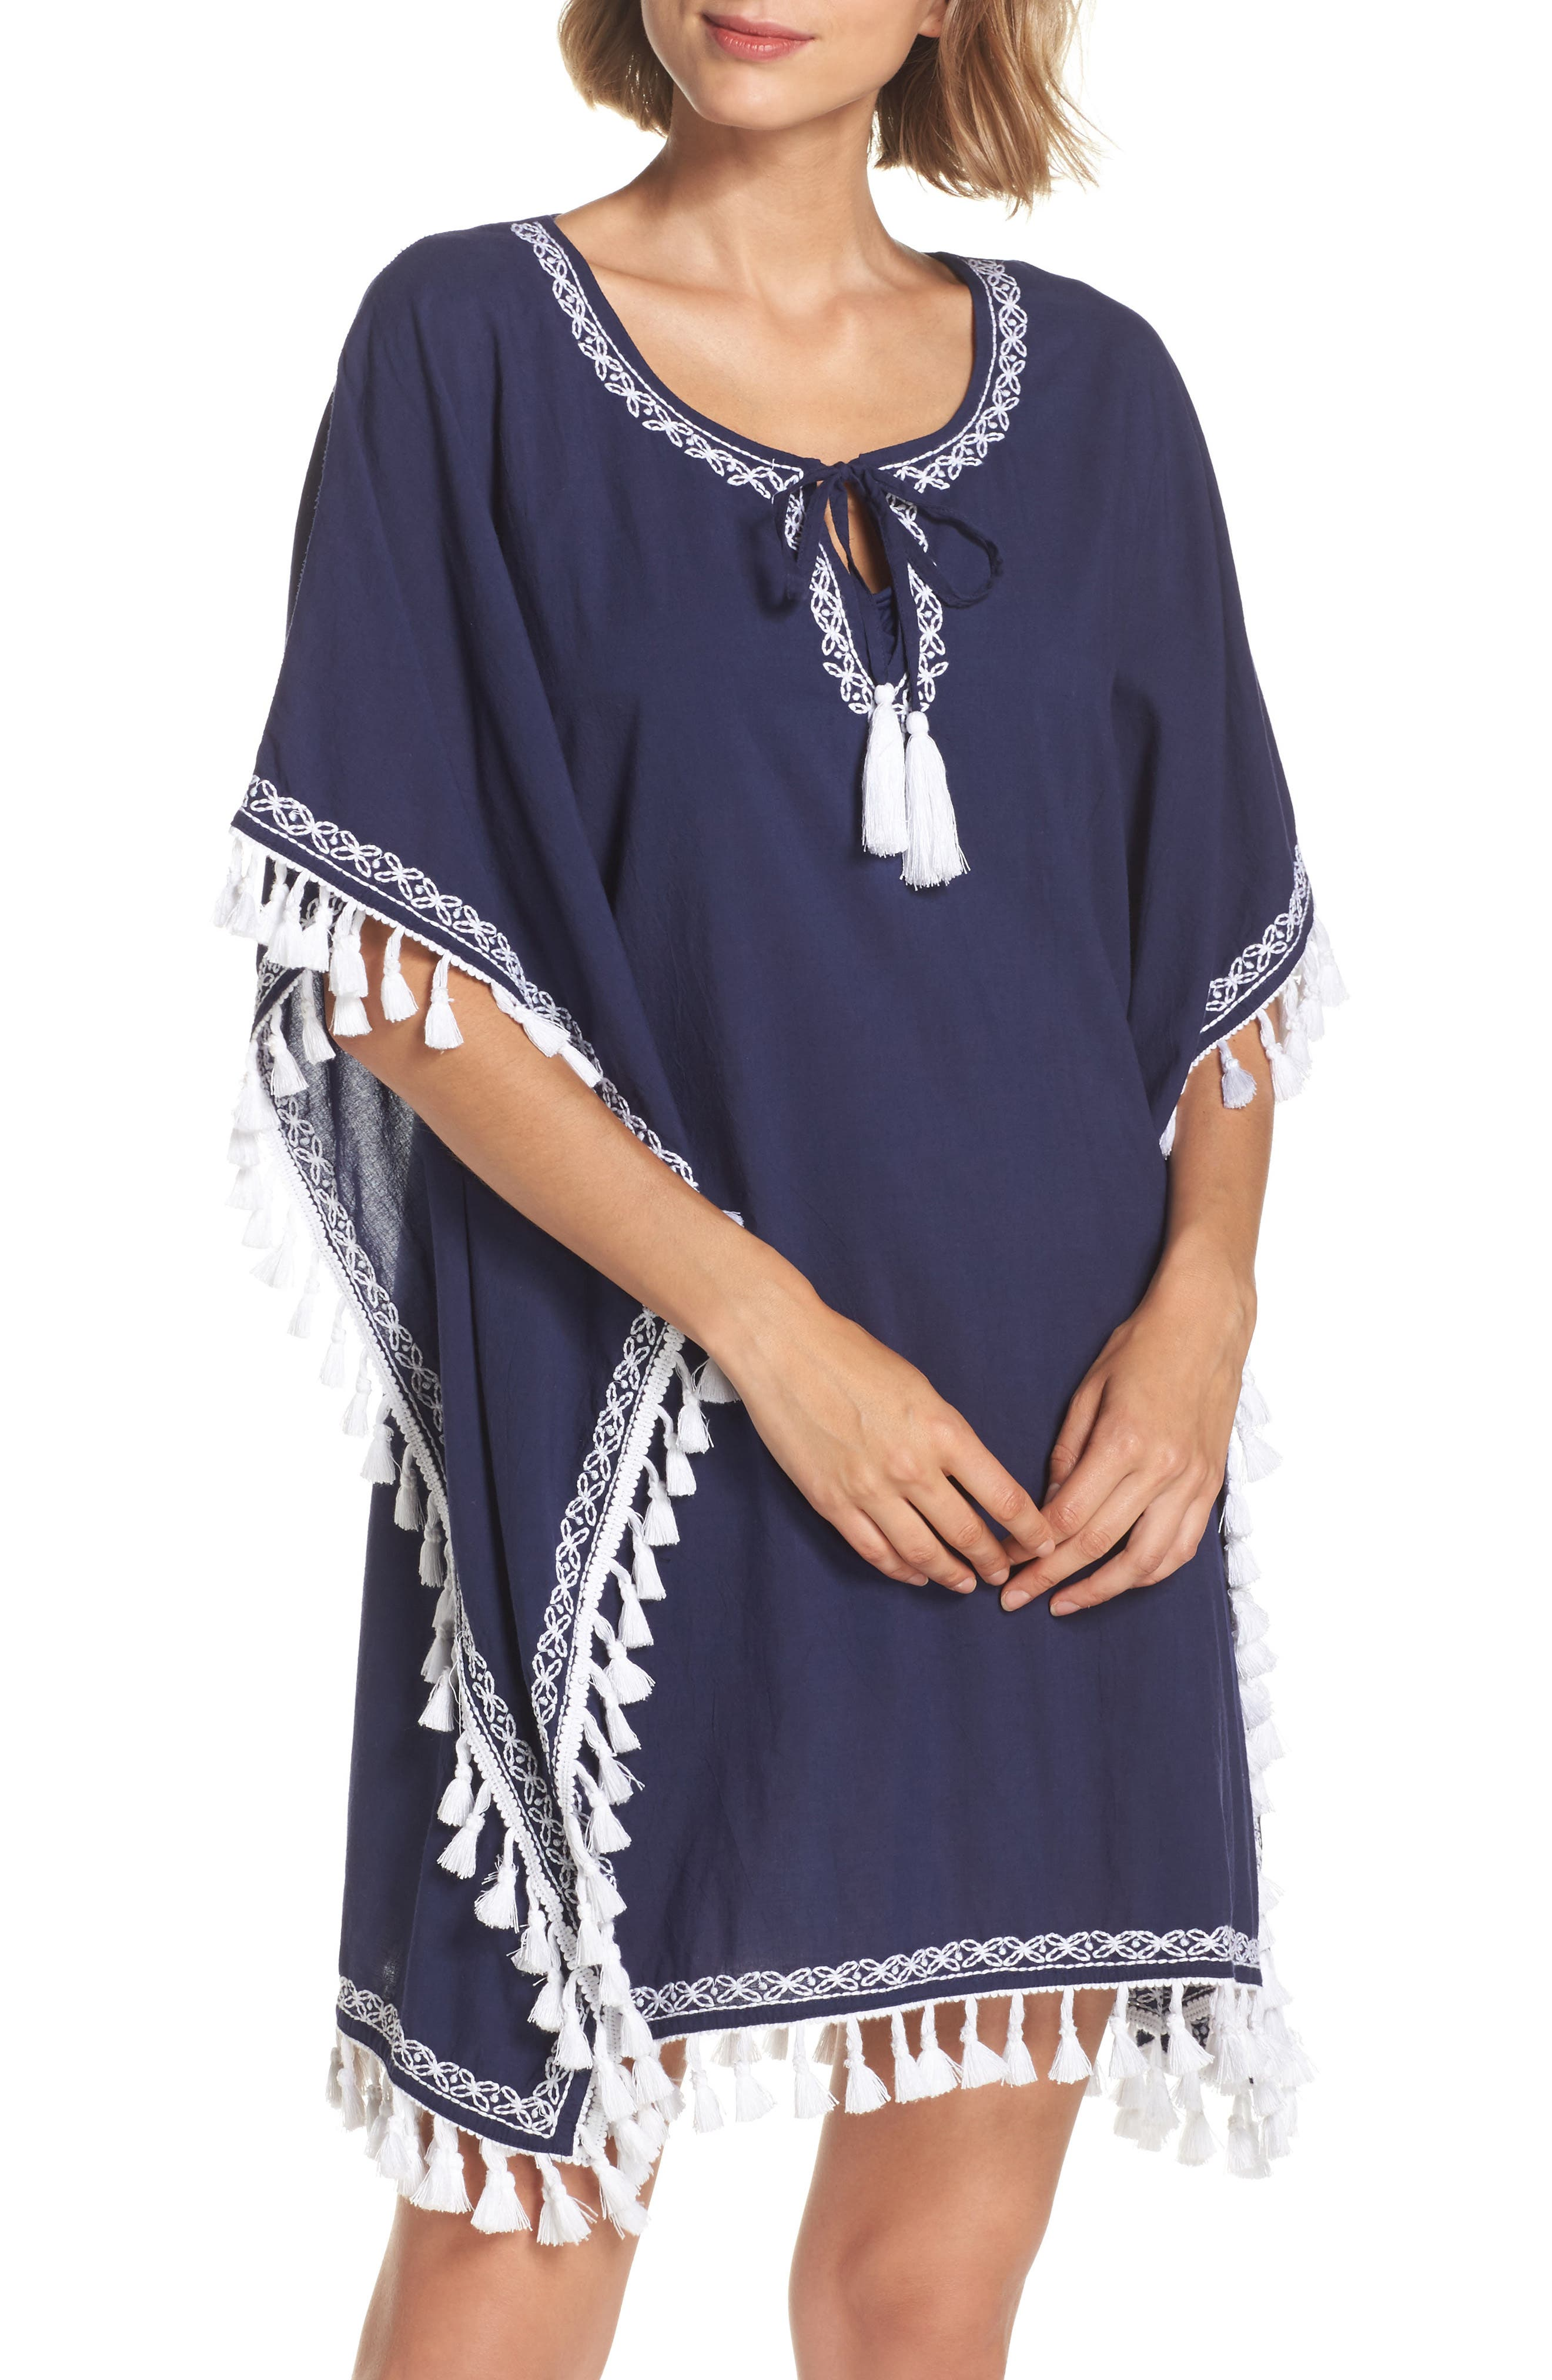 Voile Cover-Up Tunic,                         Main,                         color, Mare Navy/ White